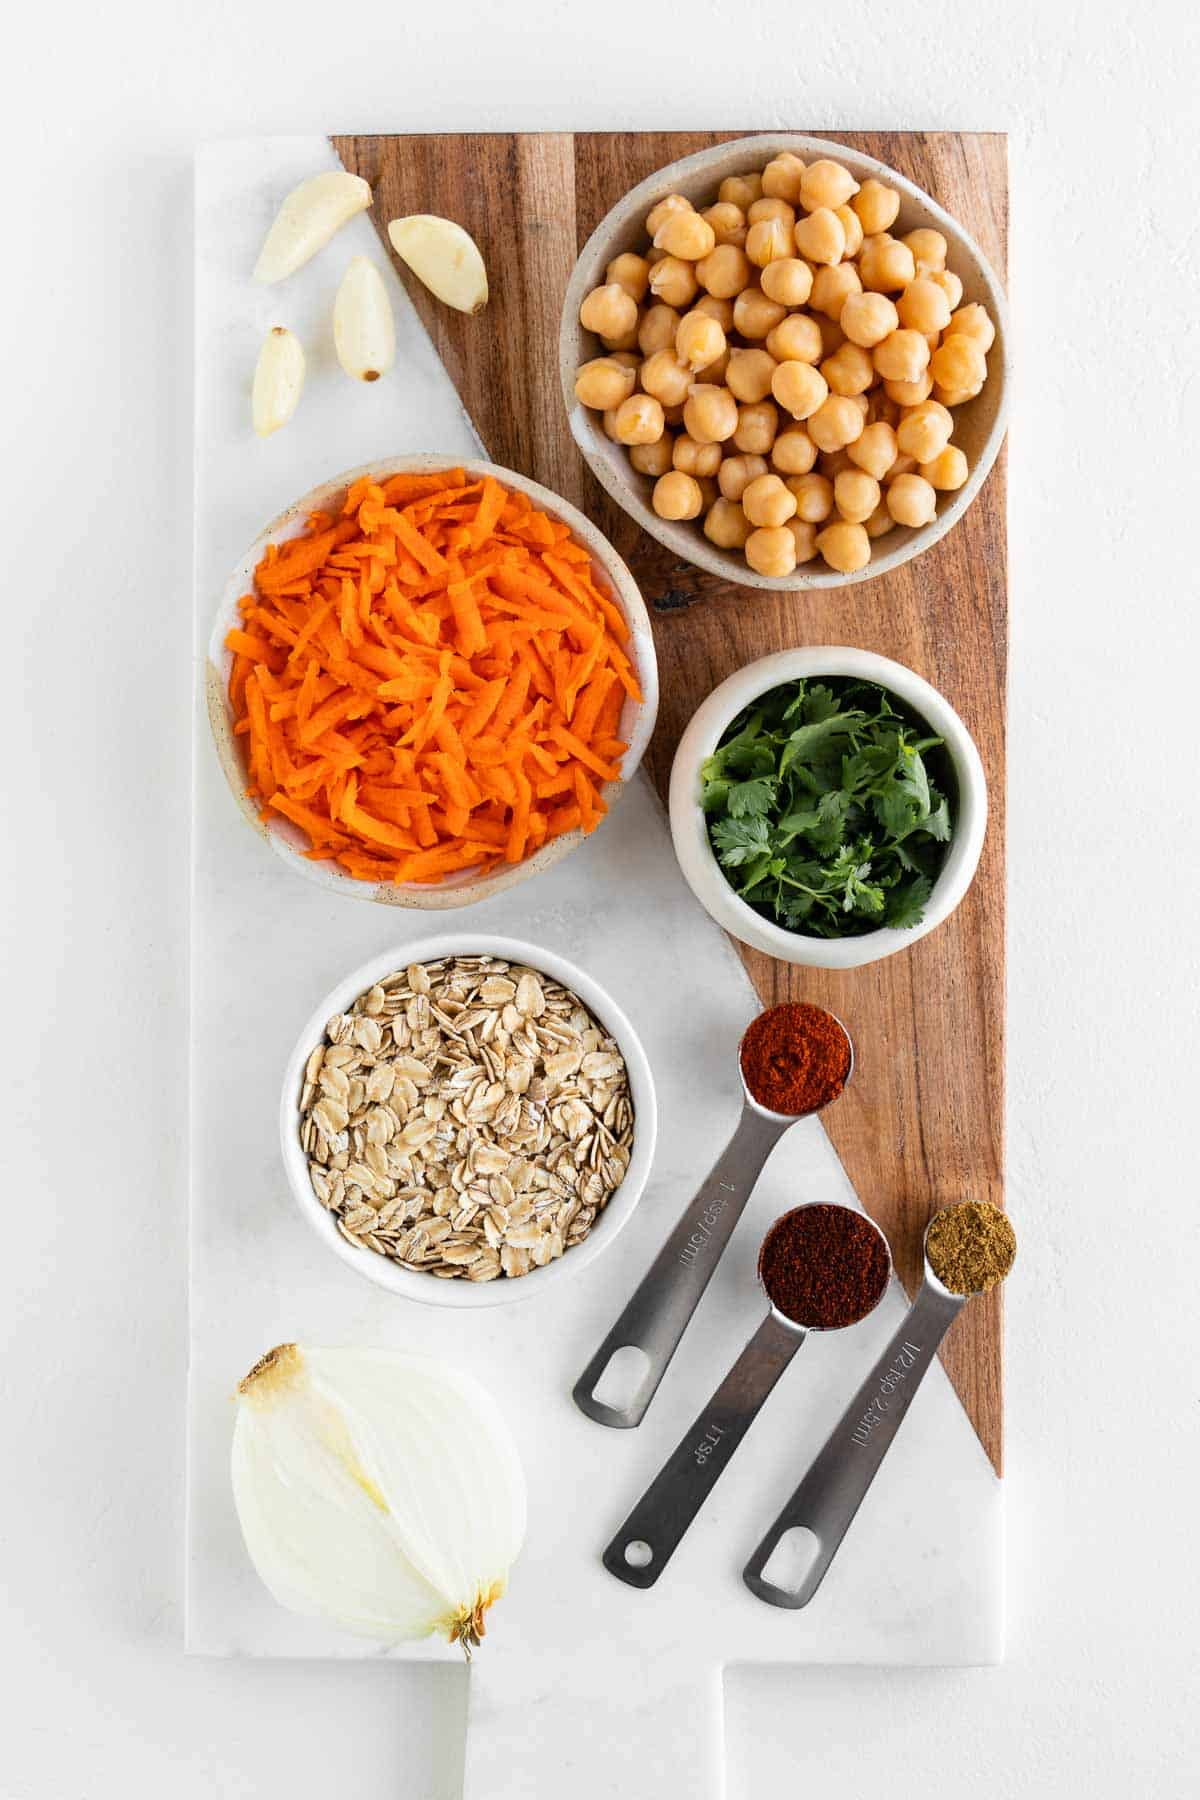 a marble and wooden cutting board topped with chickpeas, grated carrots, cilantro, rolled oats, onion, garlic, and spices